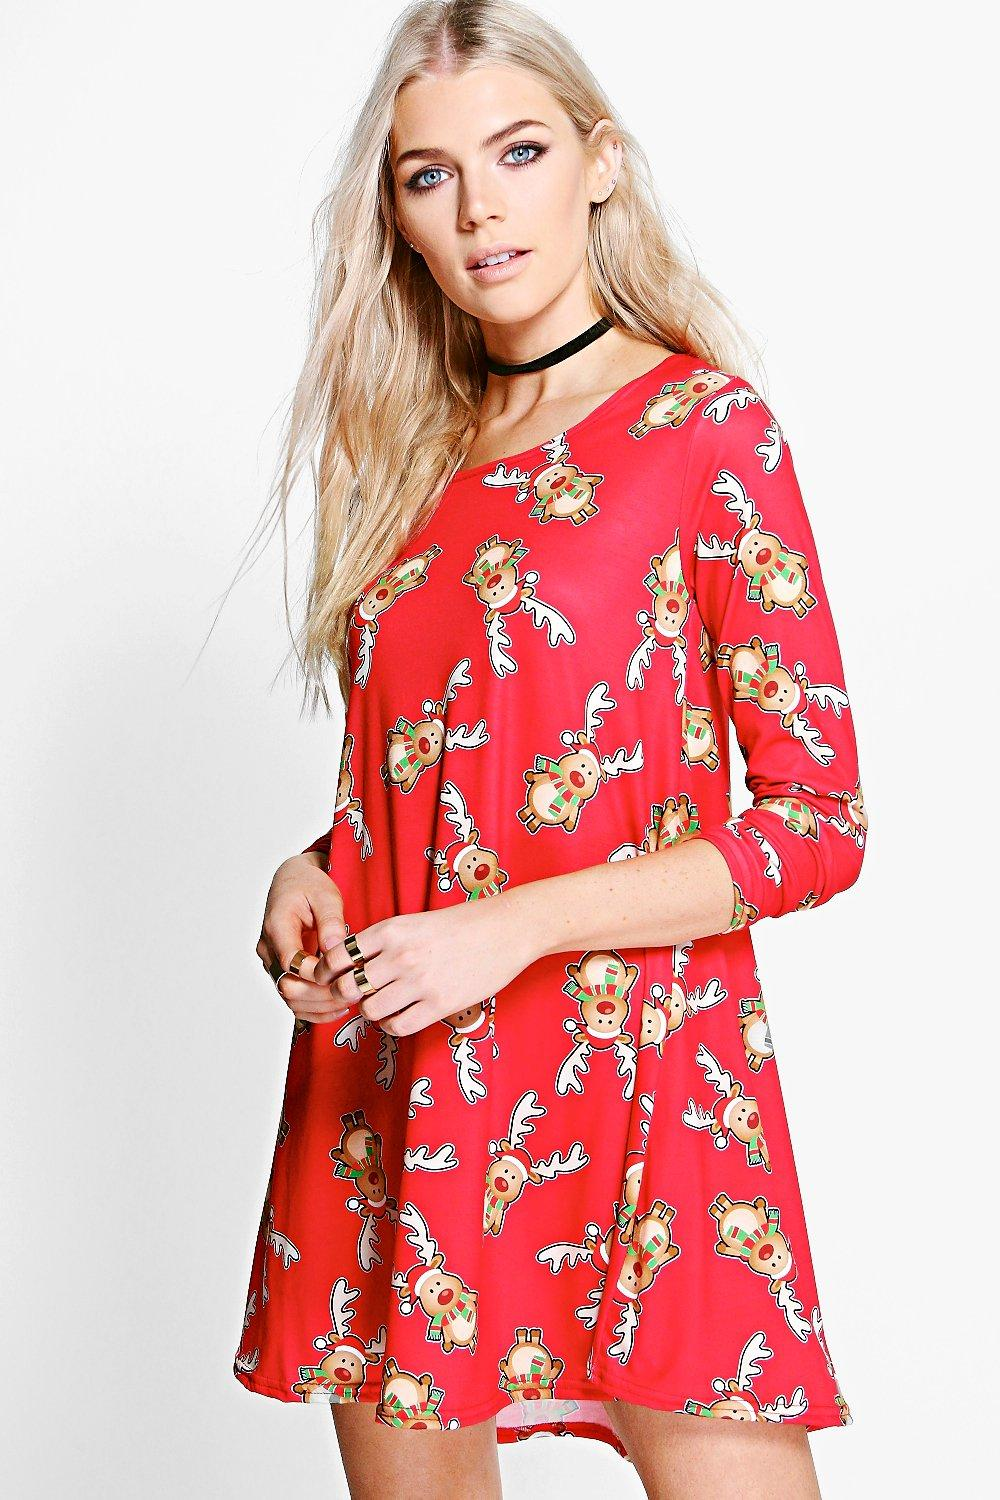 Hope Rudolph Christmas Swing Dress